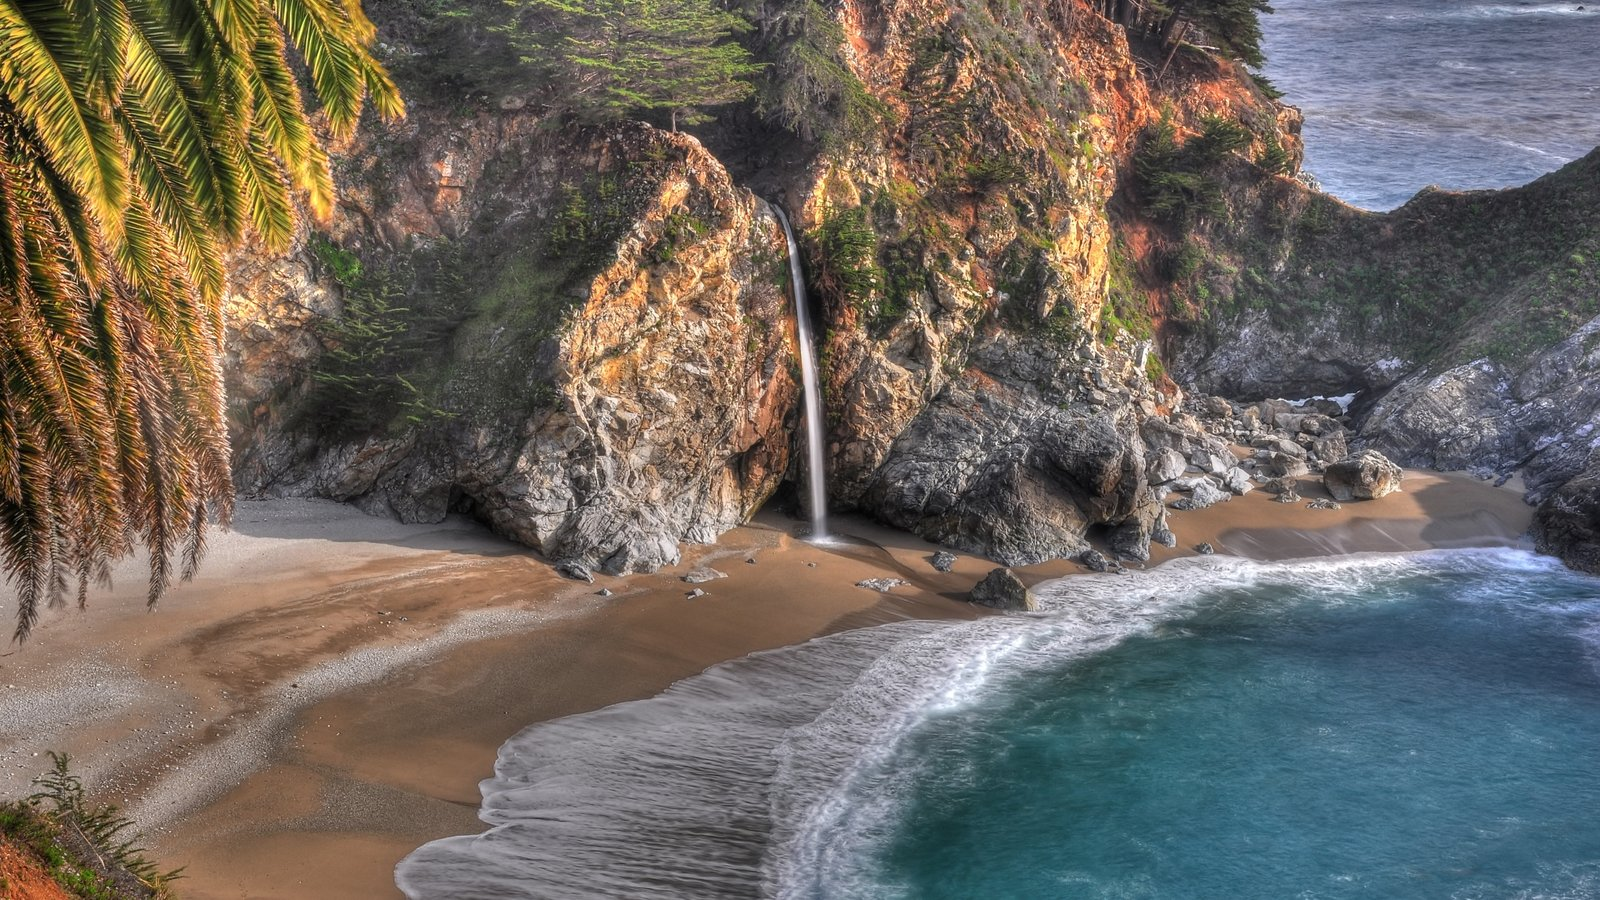 Pfeiffer Big Sur State Park which includes general coastal views, rocky coastline and a sandy beach